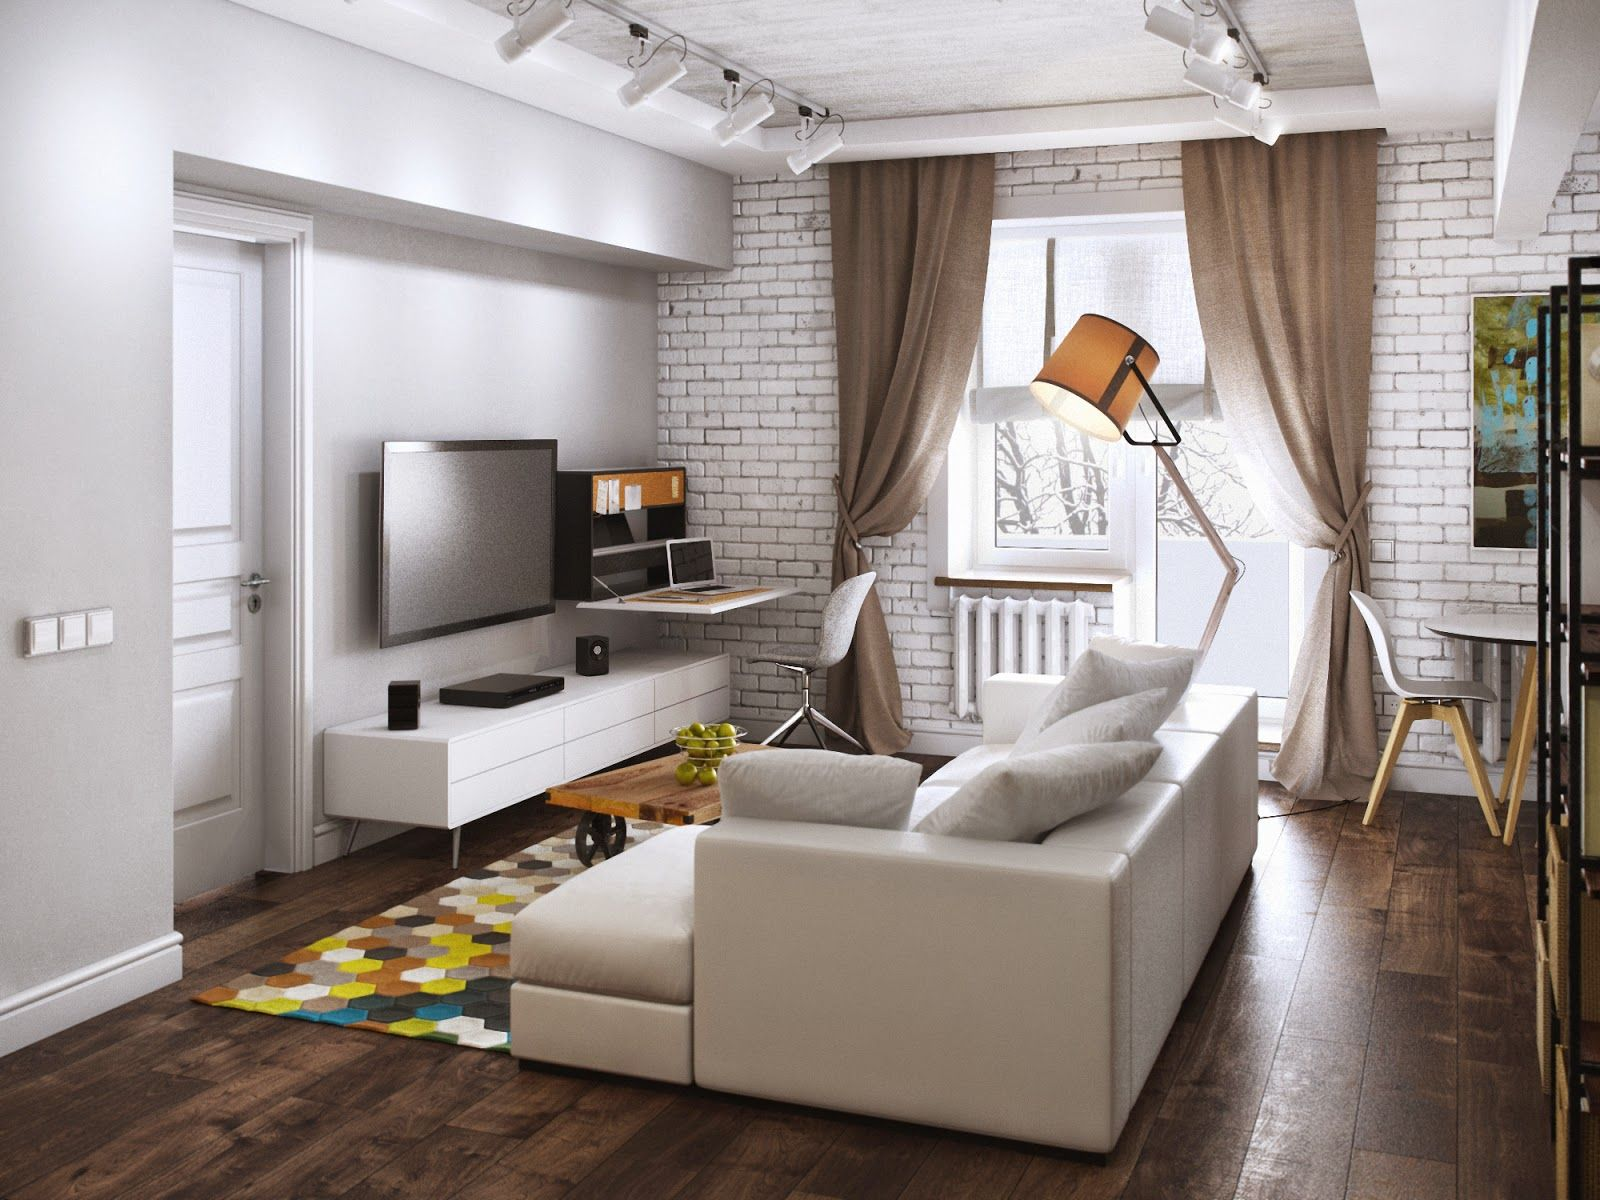 Contemporary mix of styled in one compact living room with large floor lamp and white color scheme for the room with ceiling lighting fixtures